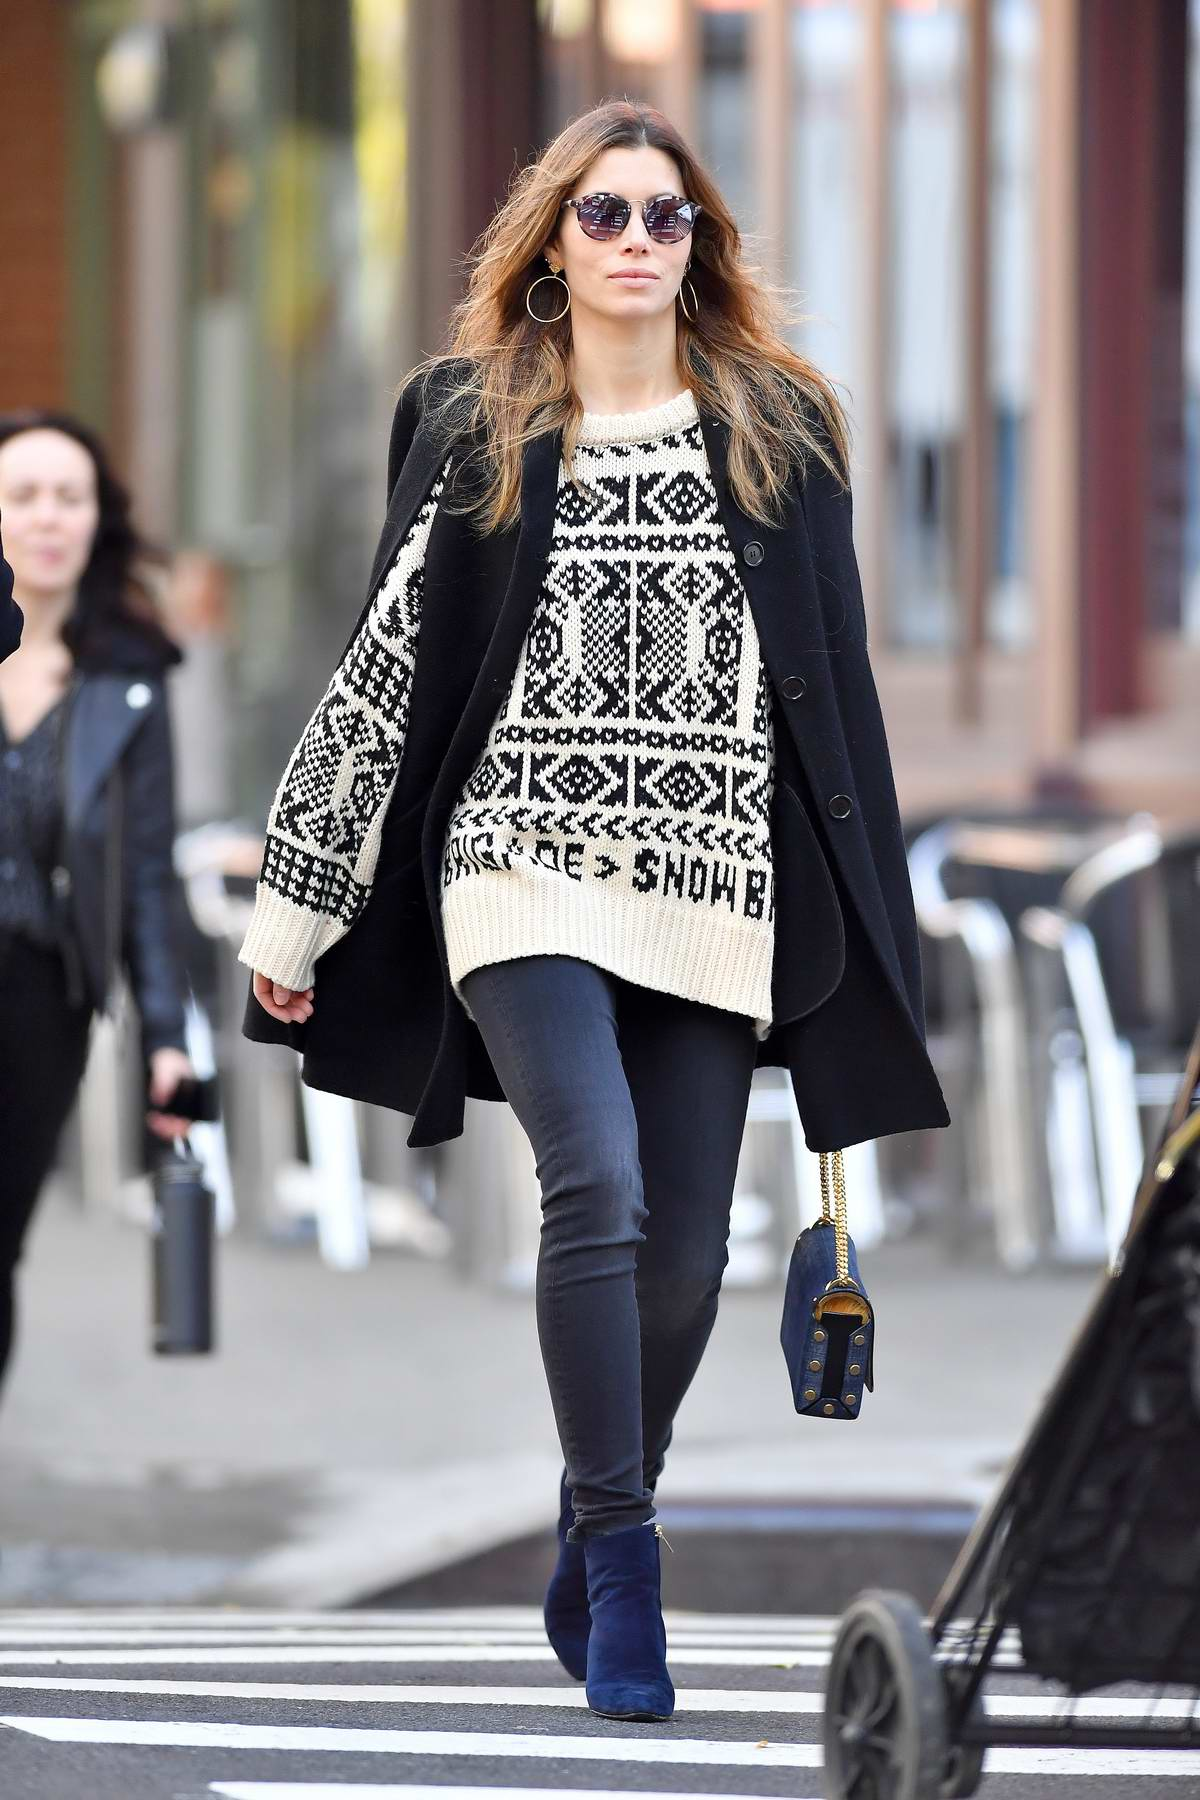 Jessica Biel wears a patterned beige sweater and skinny jeans while out in New York City